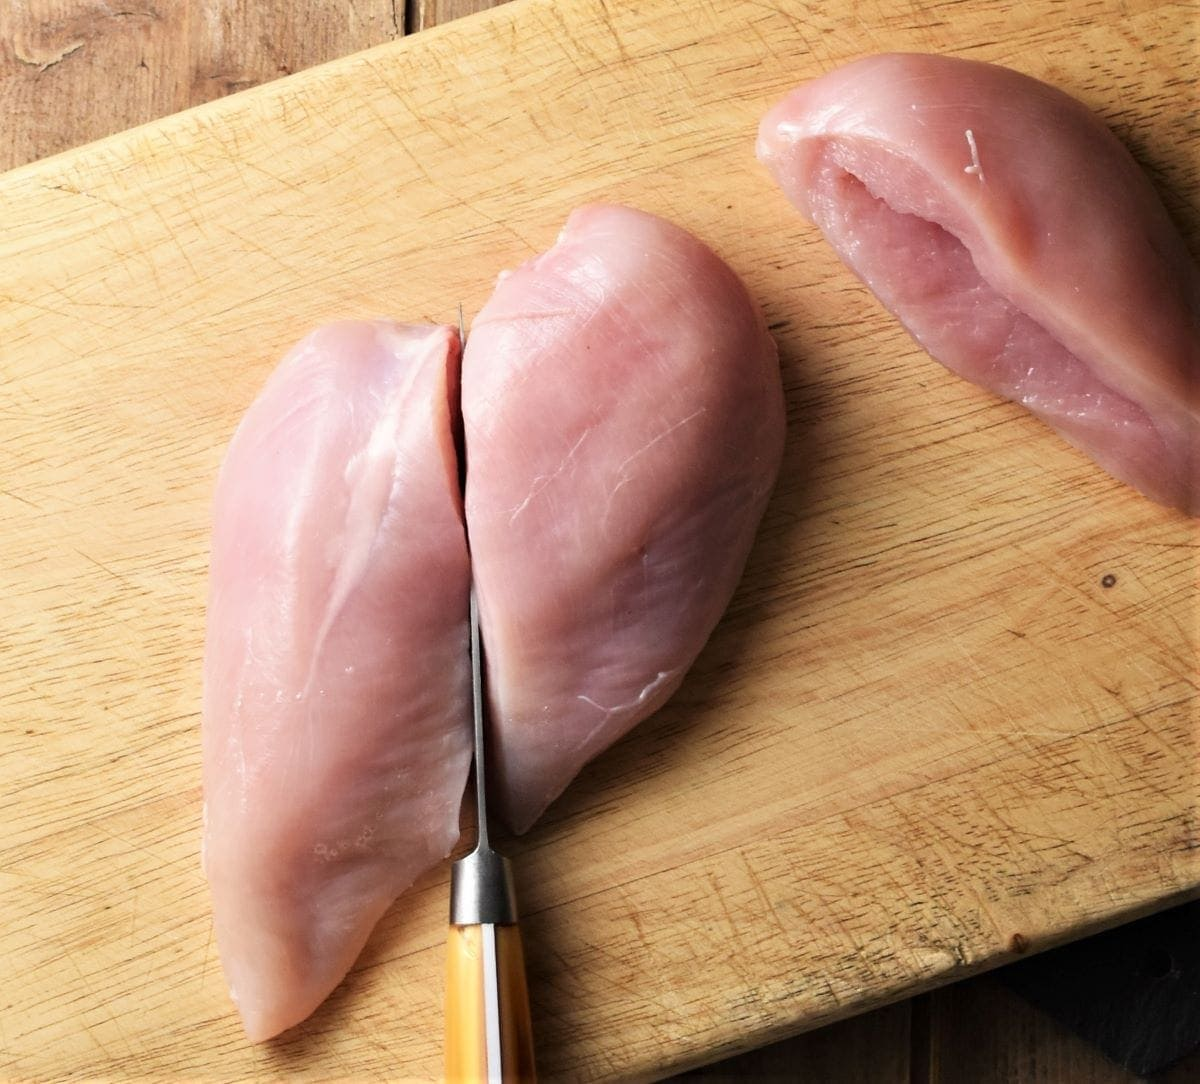 Cutting chicken breast on top of board.